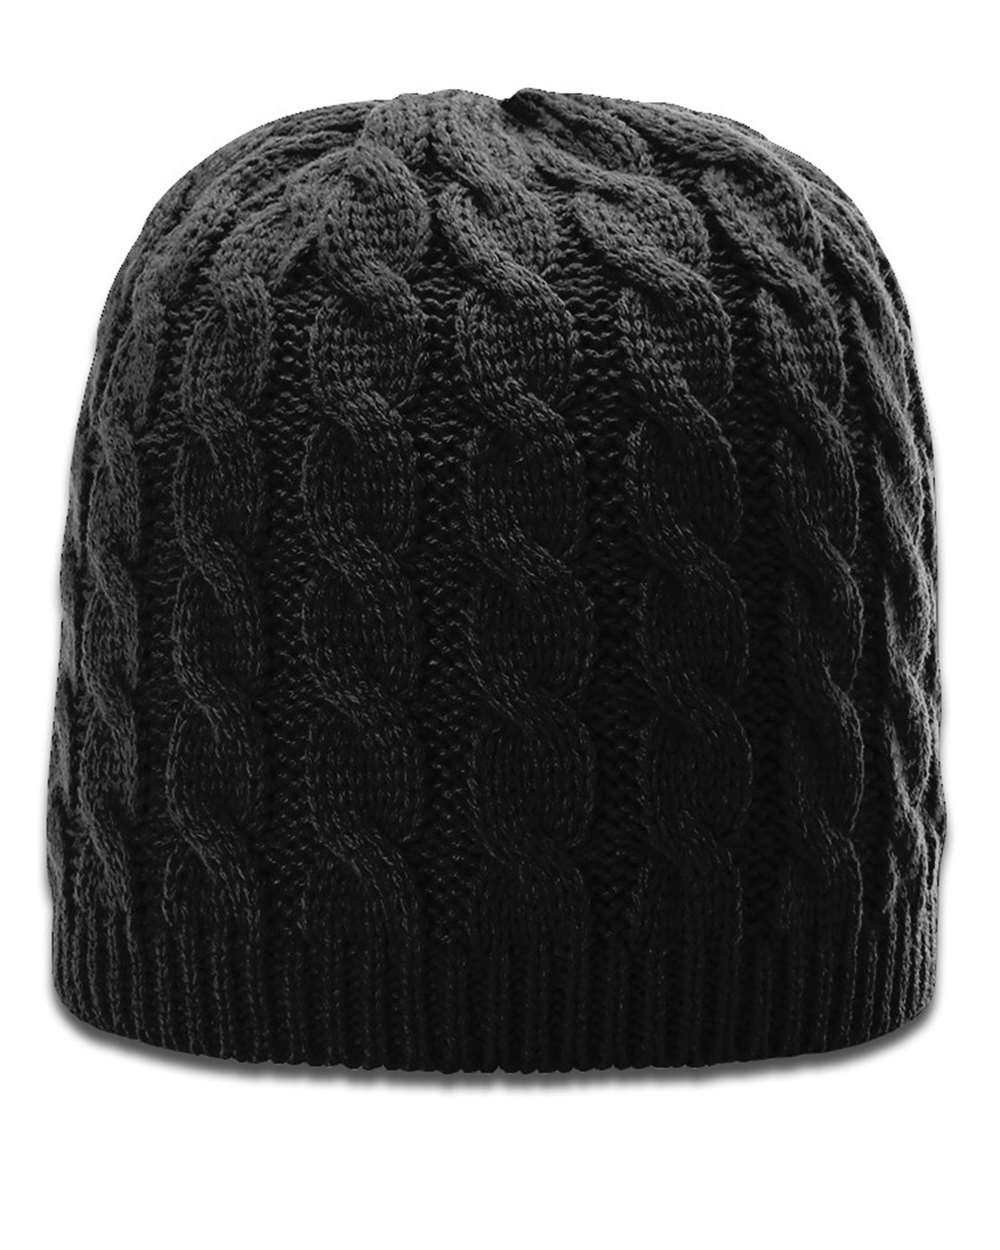 Richardson 138 - Cable Knit Beanie